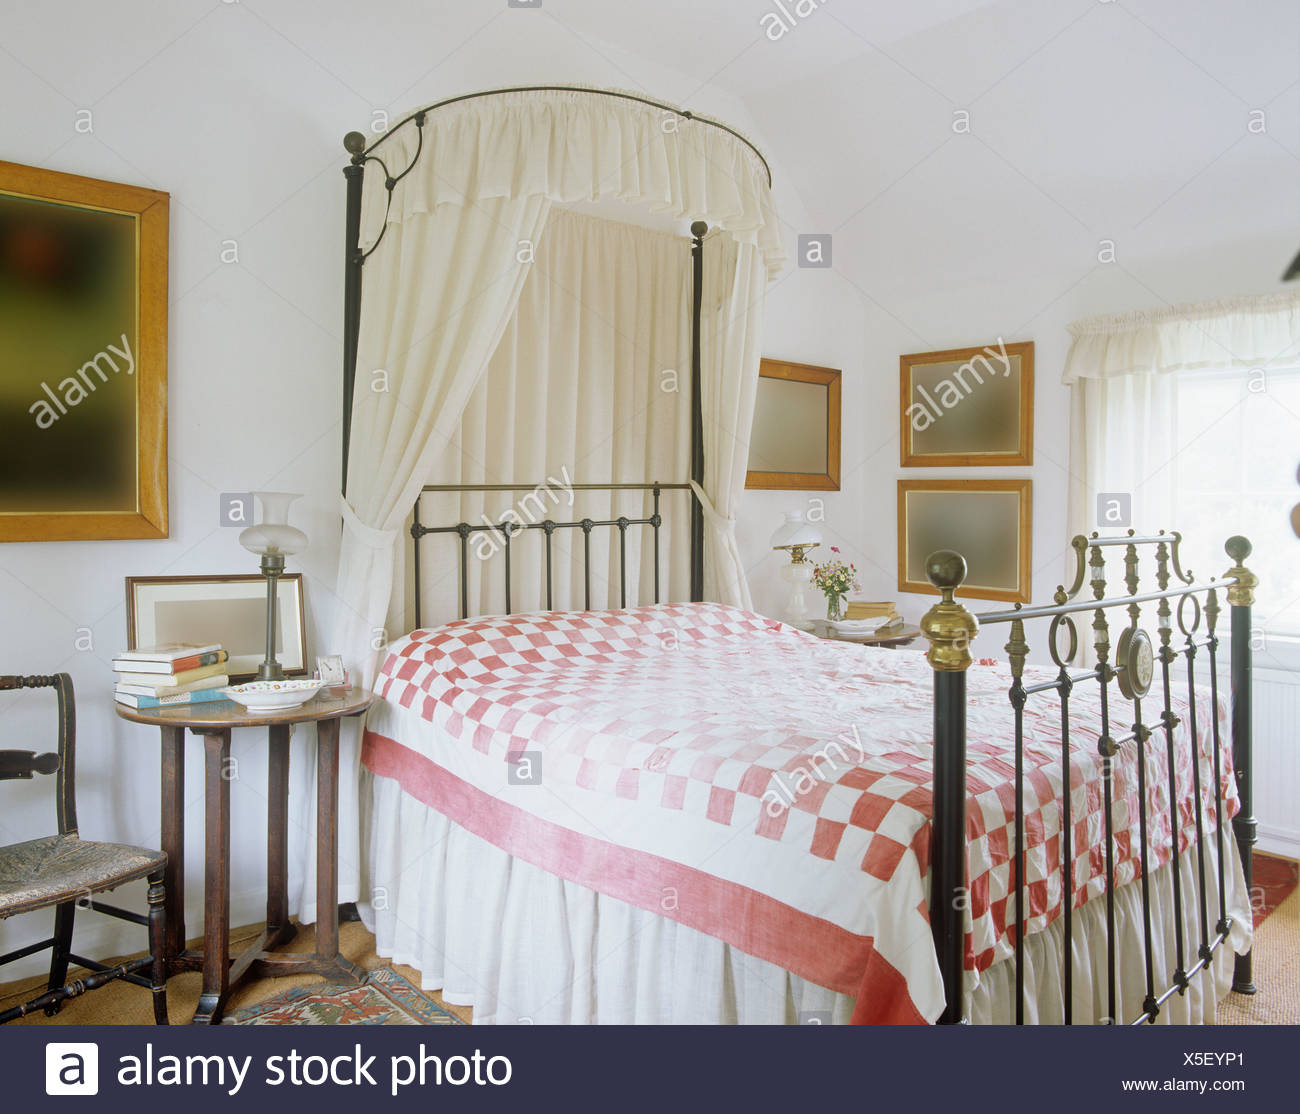 antique brass bed wrought iron metal canopy with white voile drapes on antique brass bed pinkwhite quilt in country bedroom wooden bedside table pink